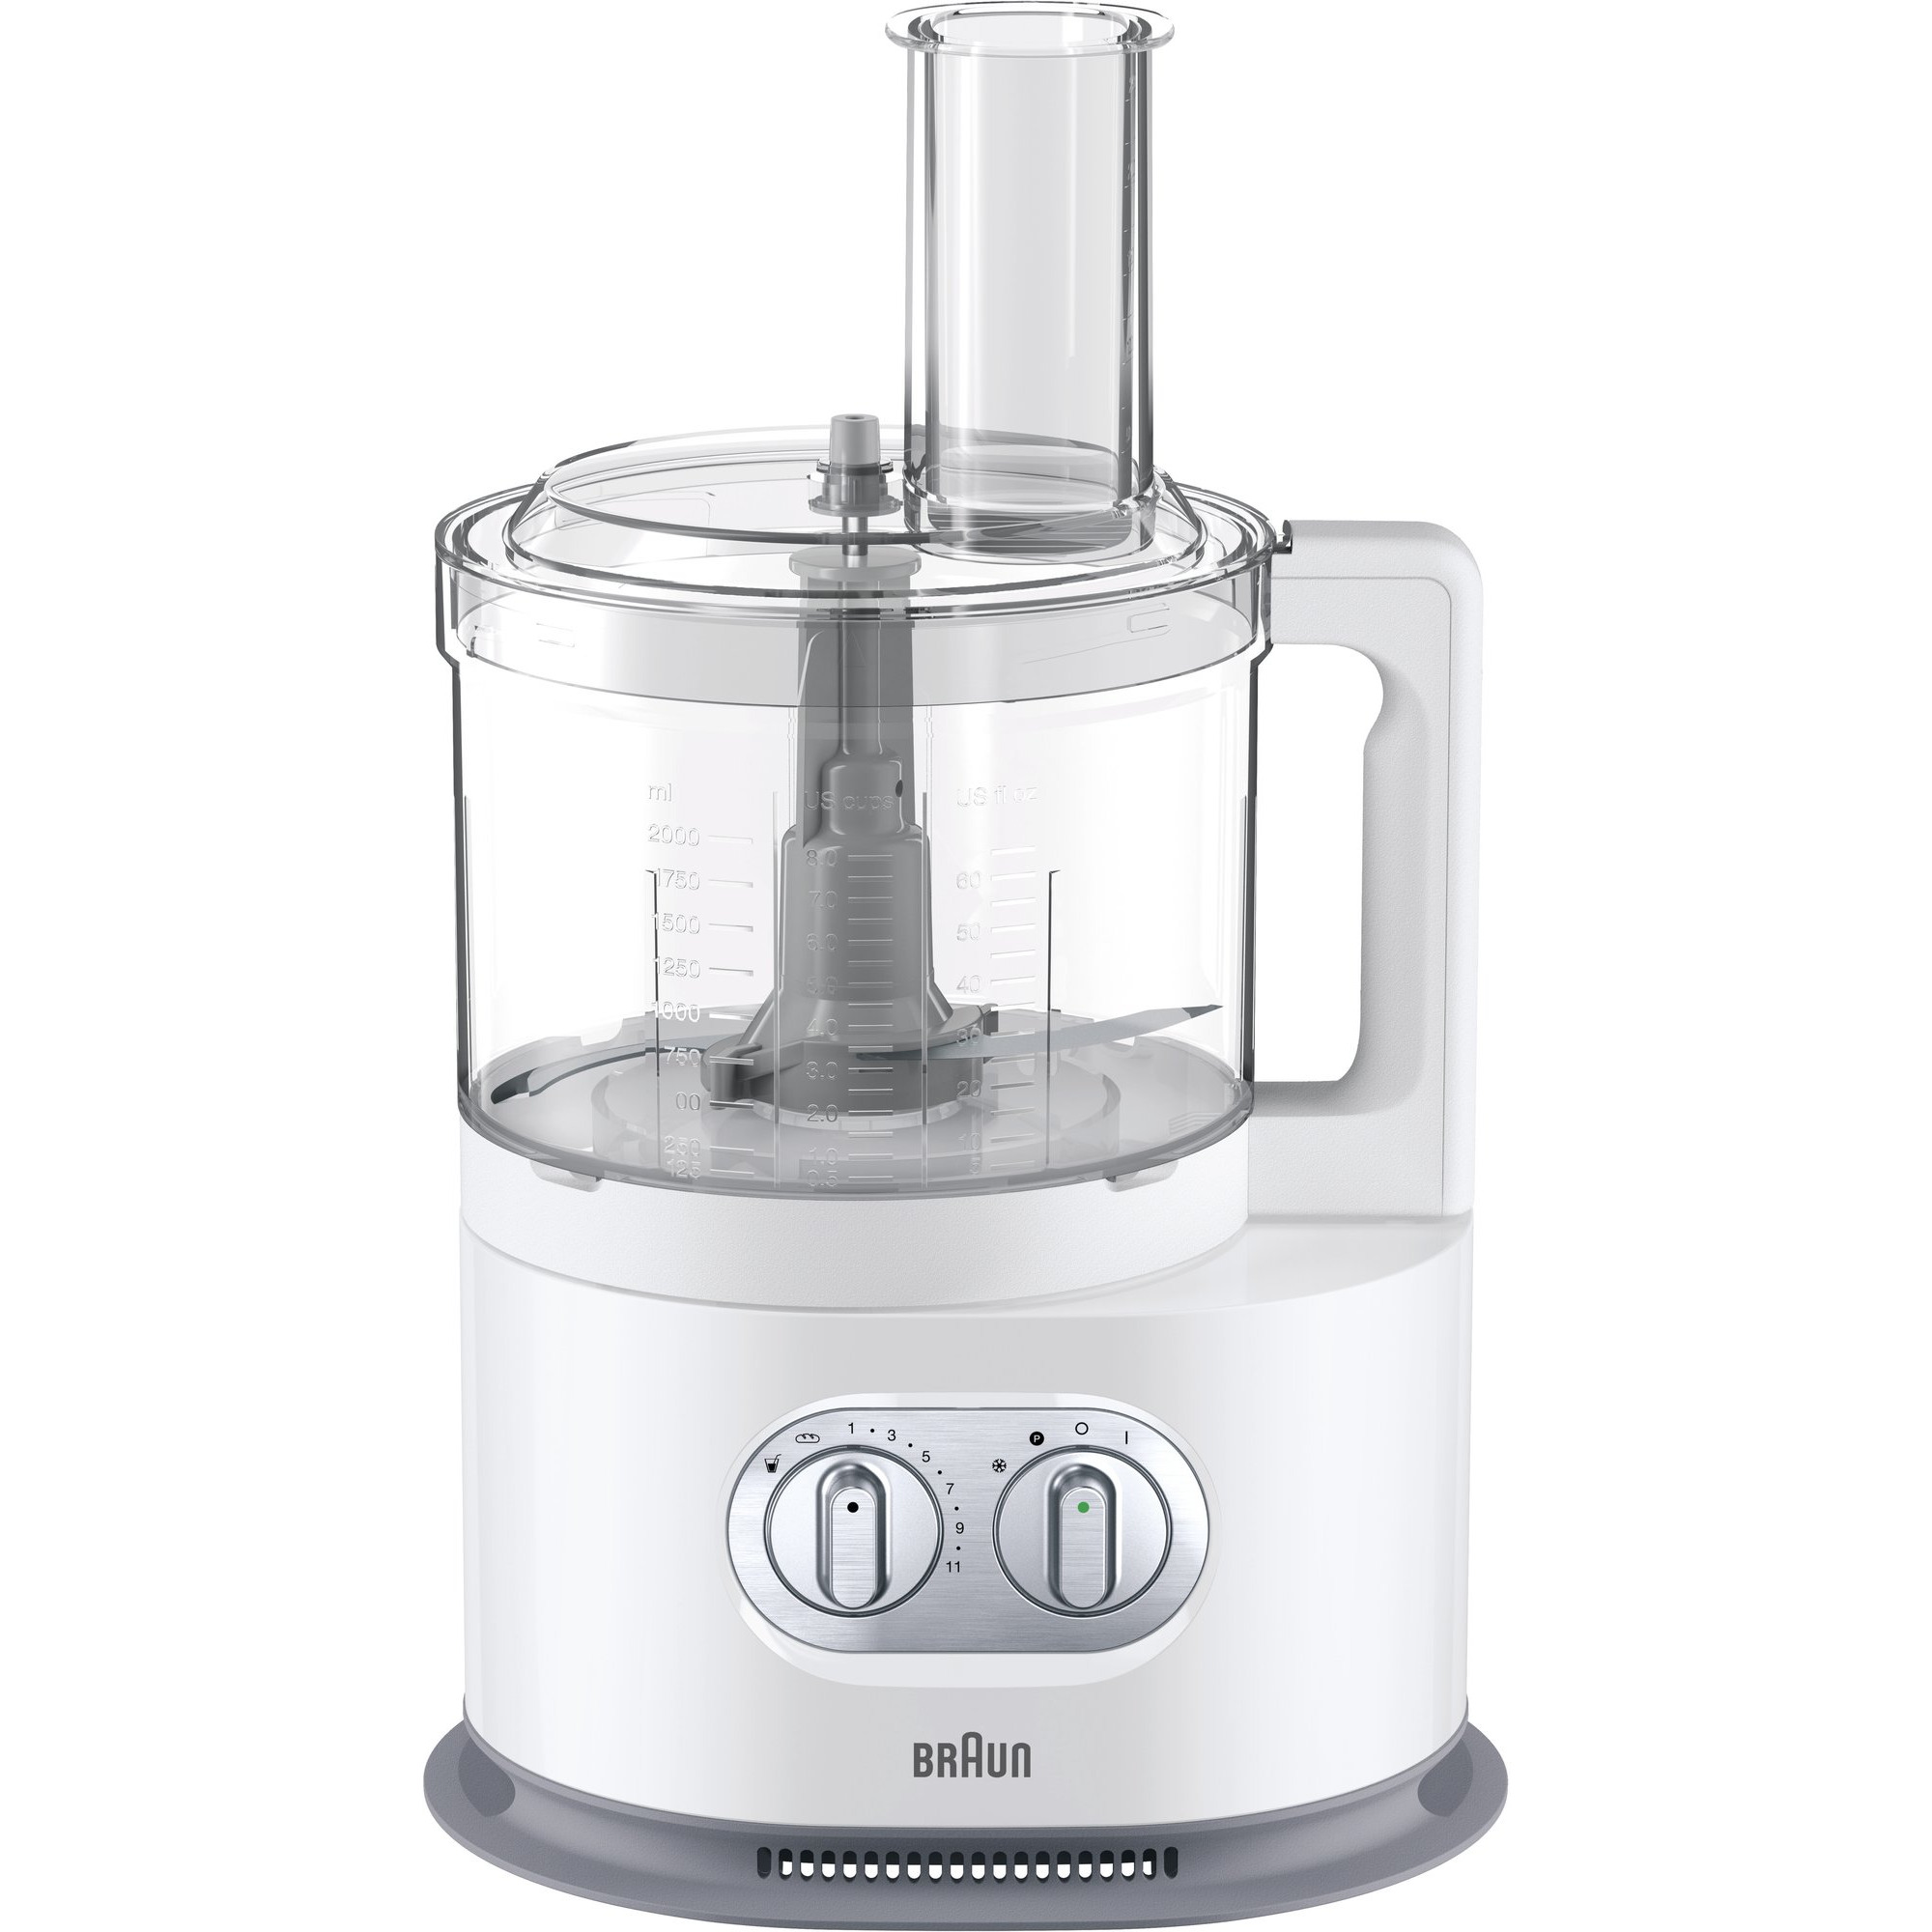 Braun FP5150 IdentityCollection Foodprocessor